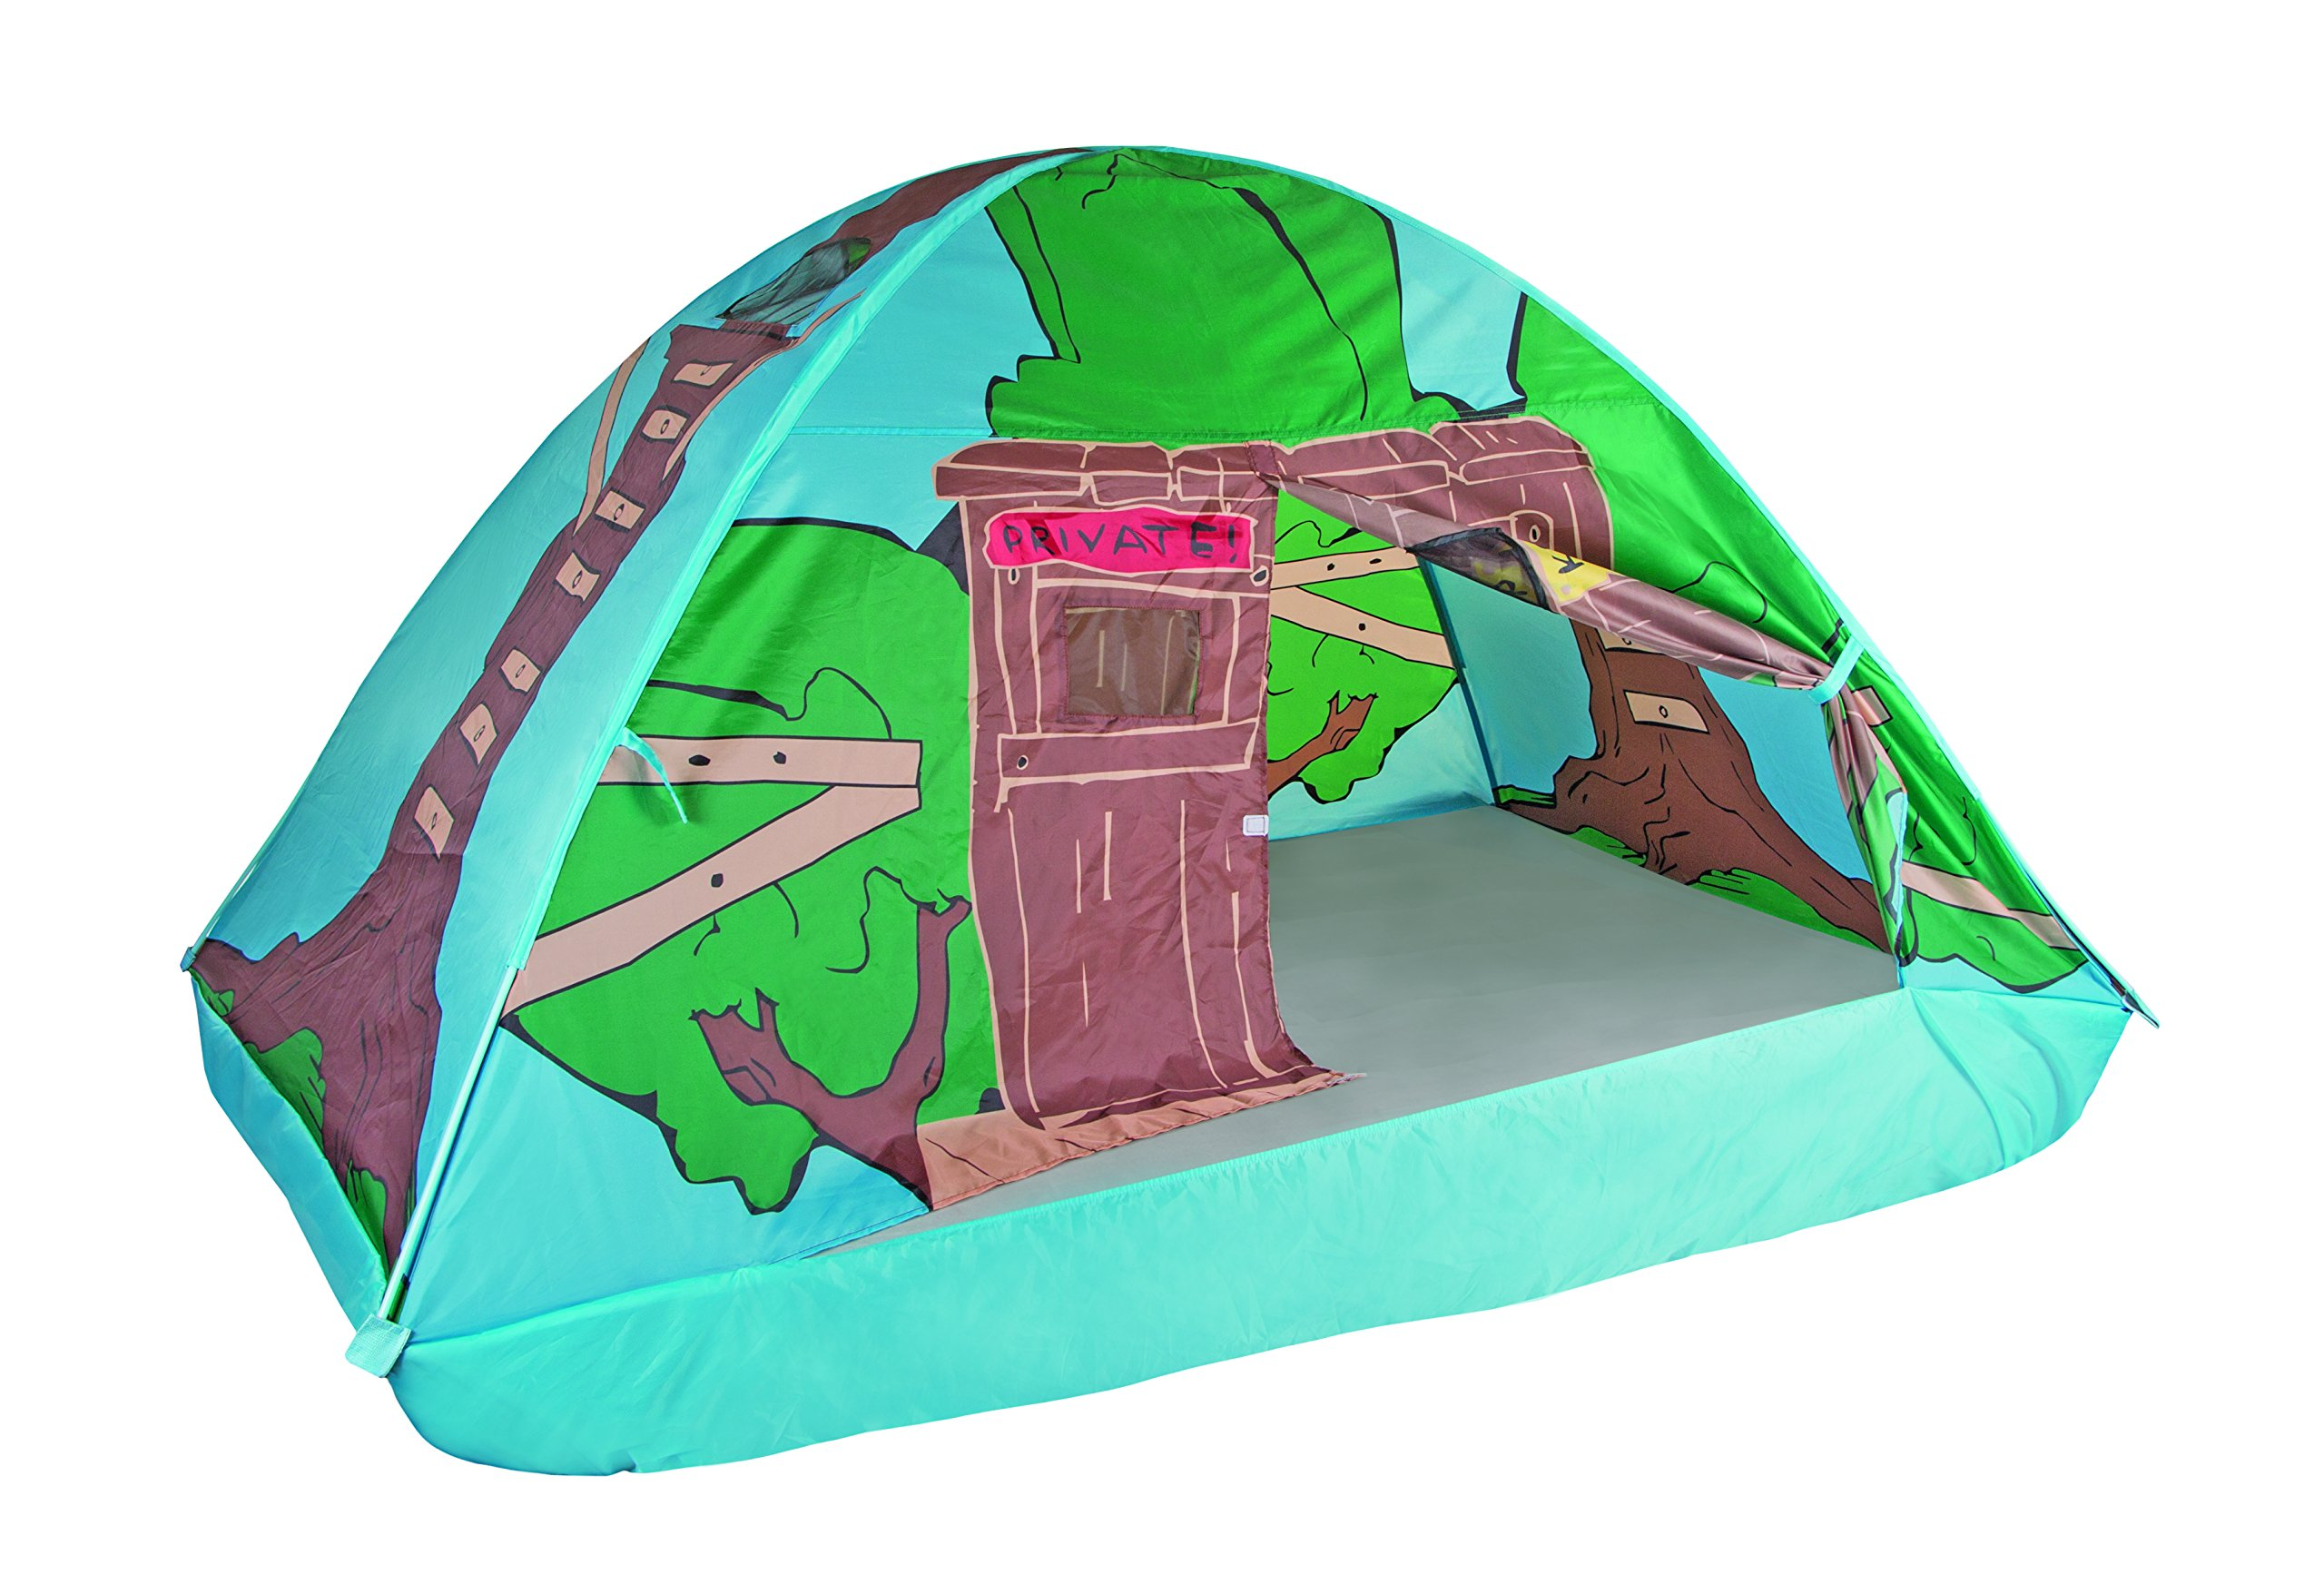 Galleon - Pacific Play Tents Kids Tree House Bed Tent Playhouse - Fits Full Size Mattress  sc 1 st  Galleon & Galleon - Pacific Play Tents Kids Tree House Bed Tent Playhouse ...